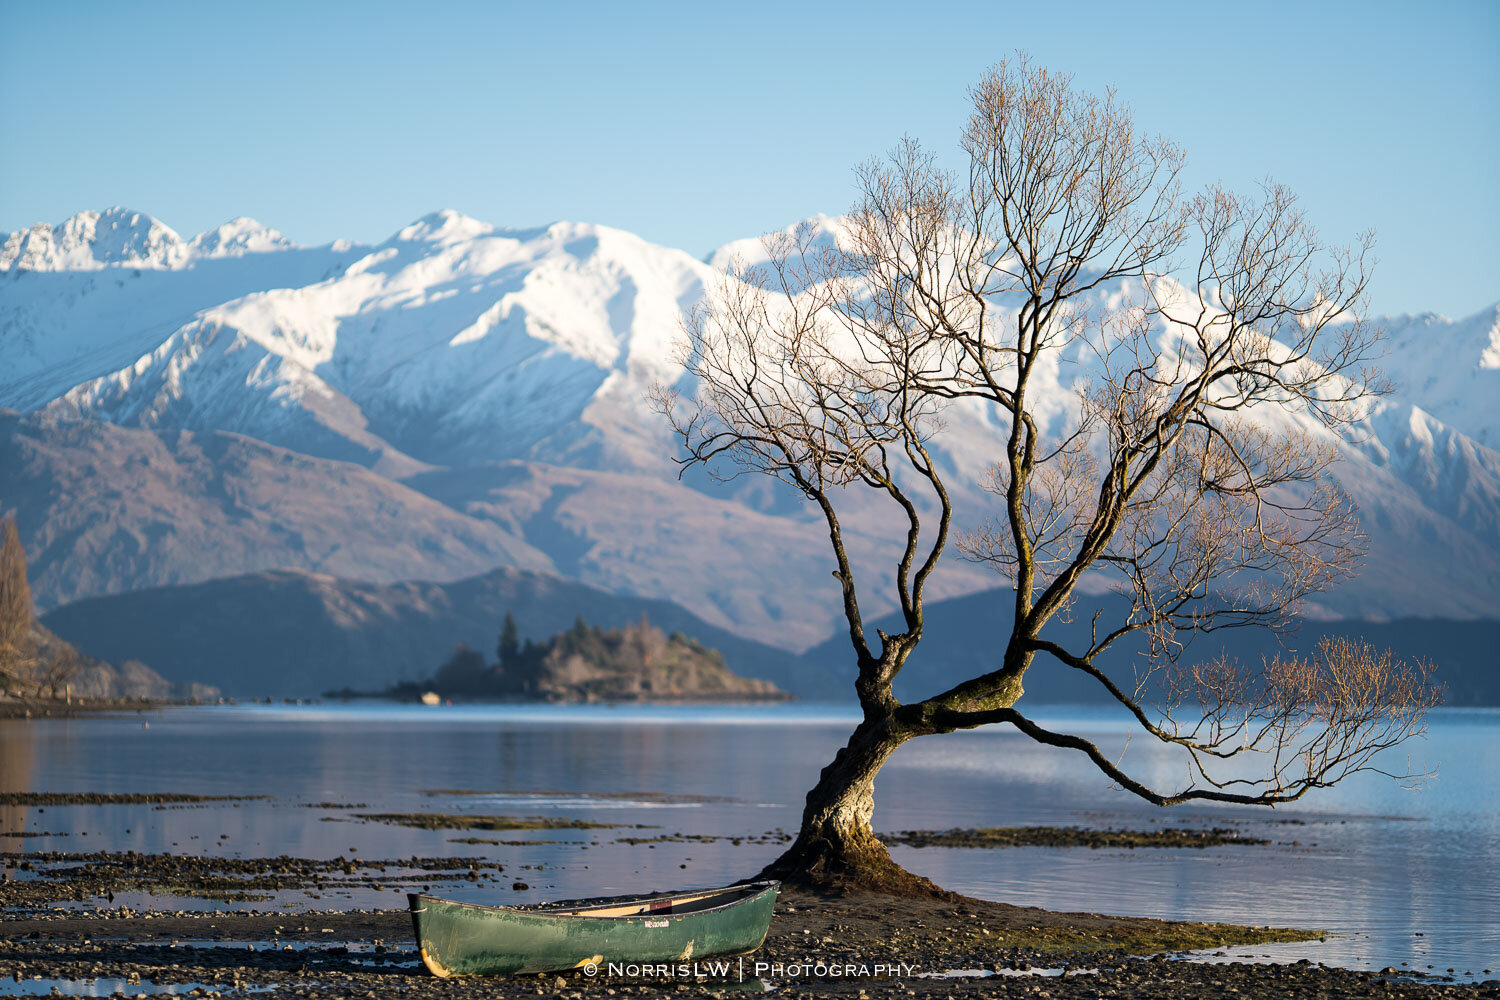 Wanaka_South_Island_NZ-20190907-024.jpg